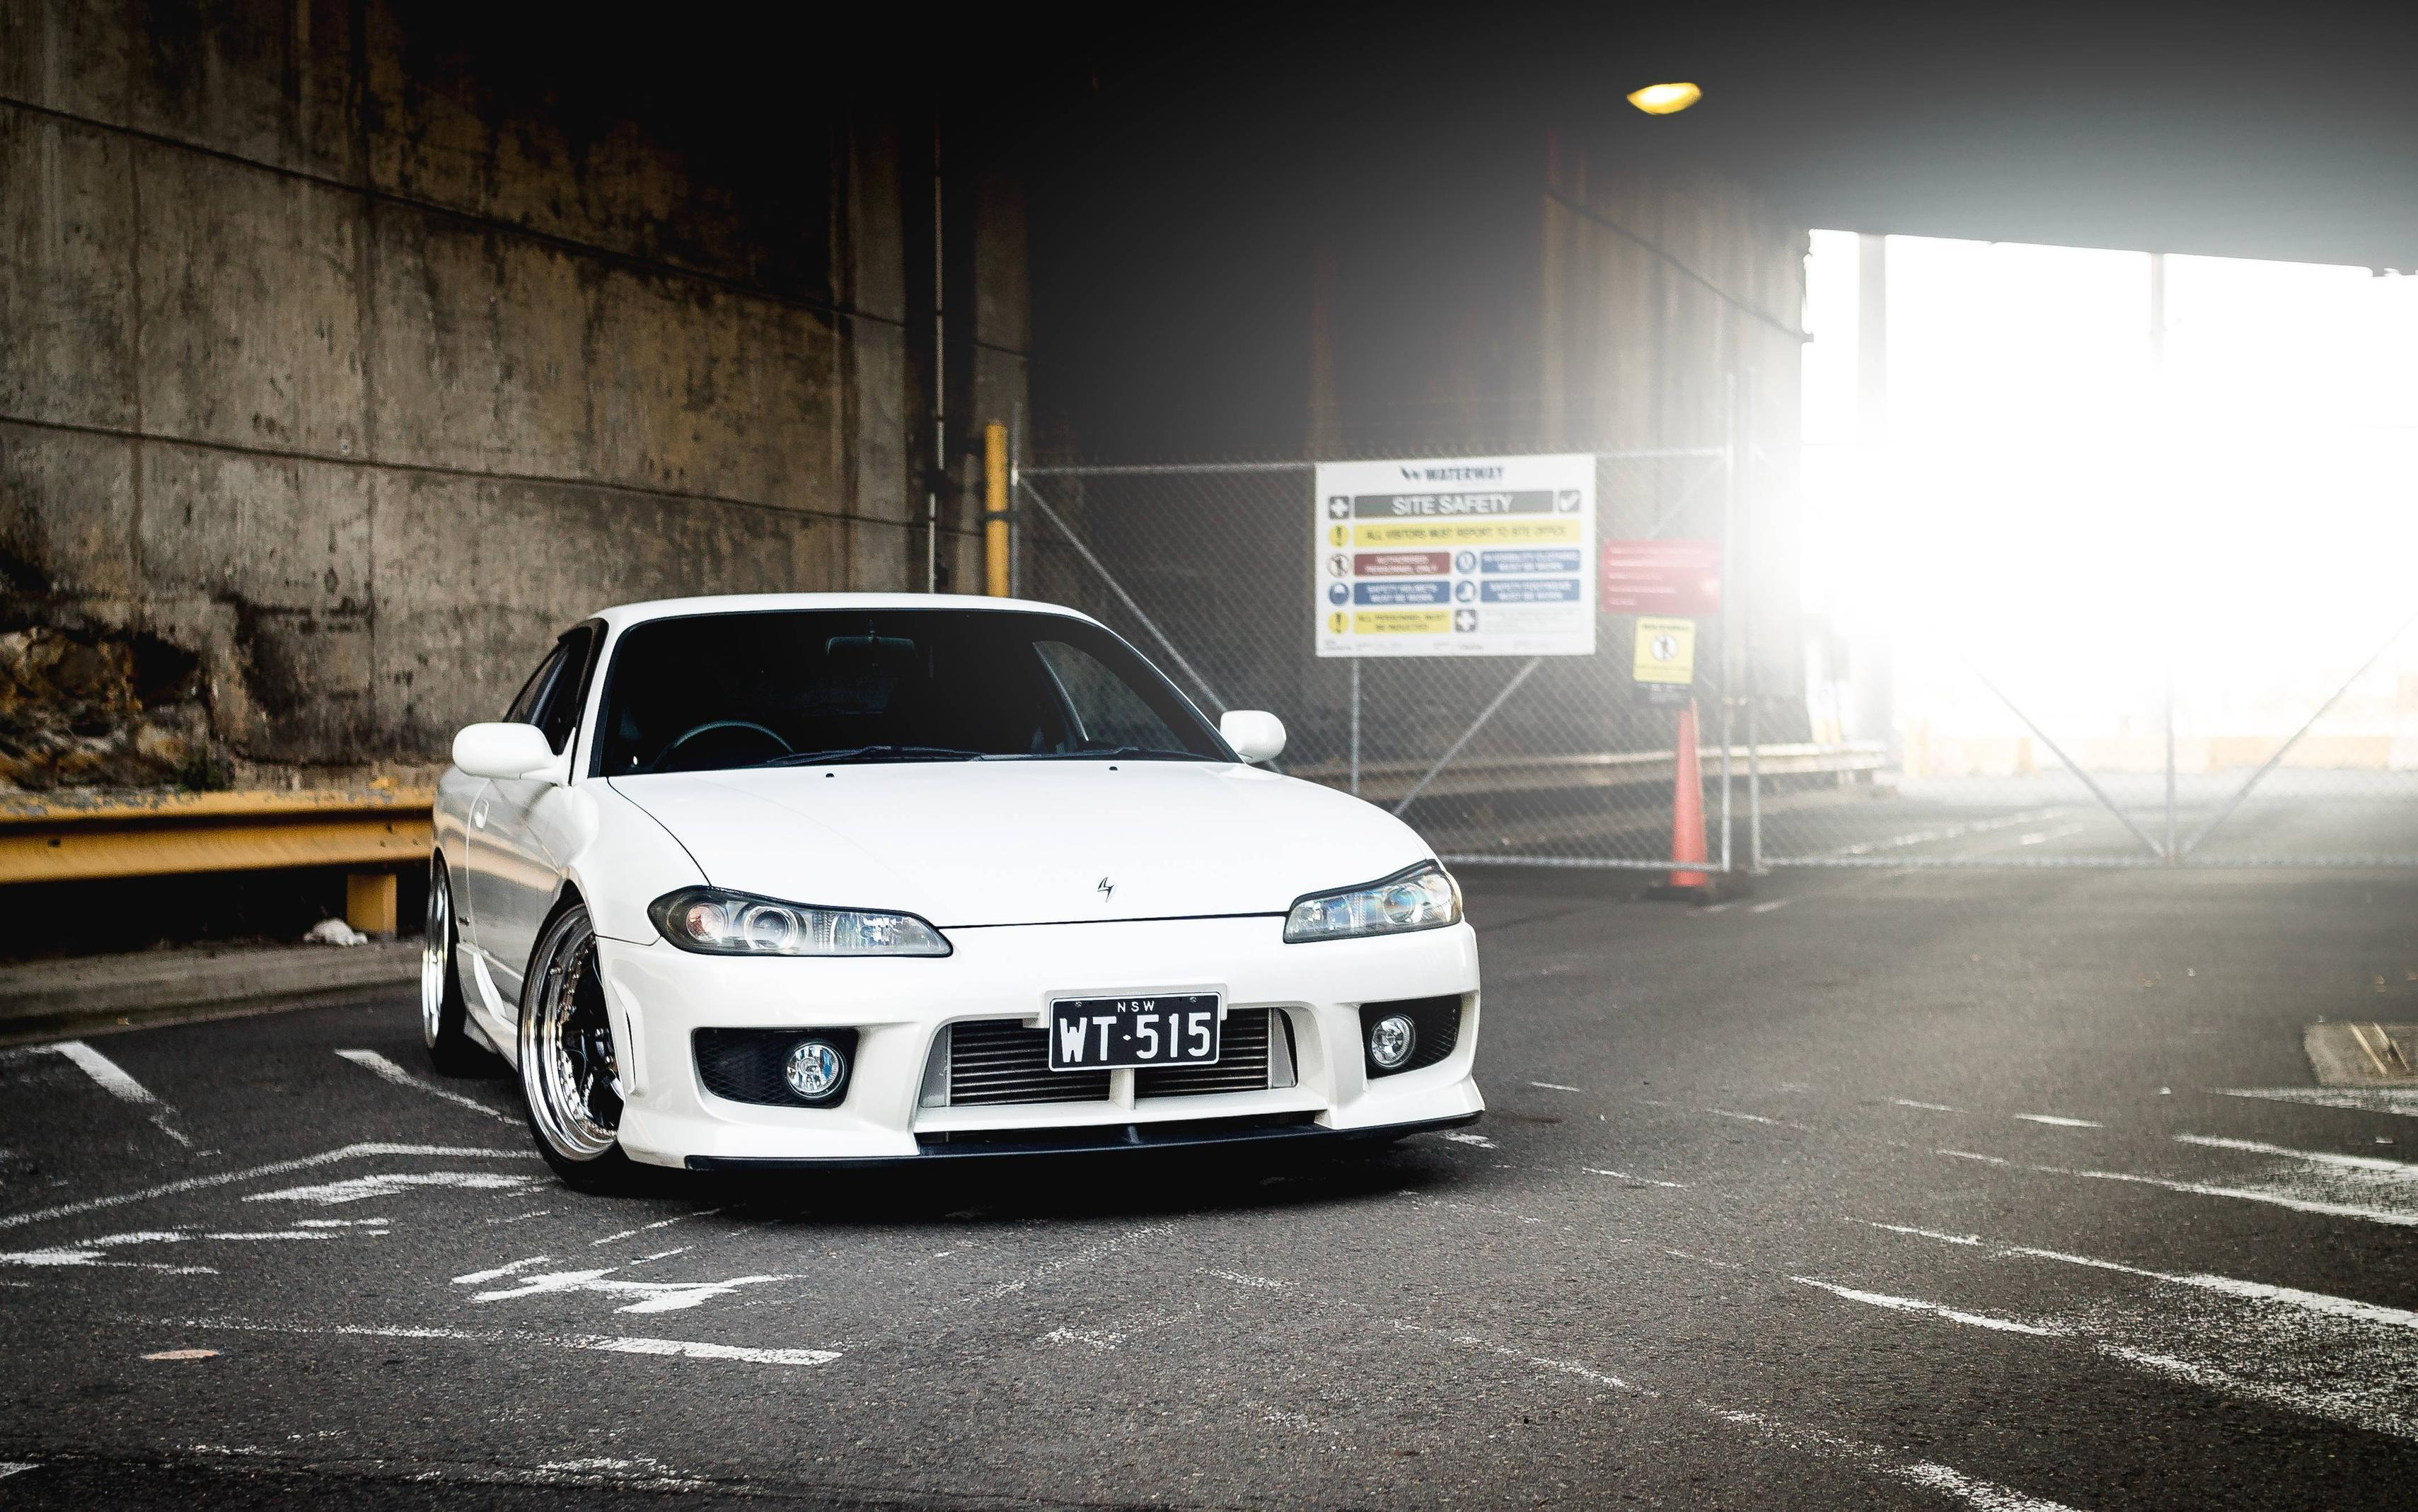 s15 wallpaper - photo #4